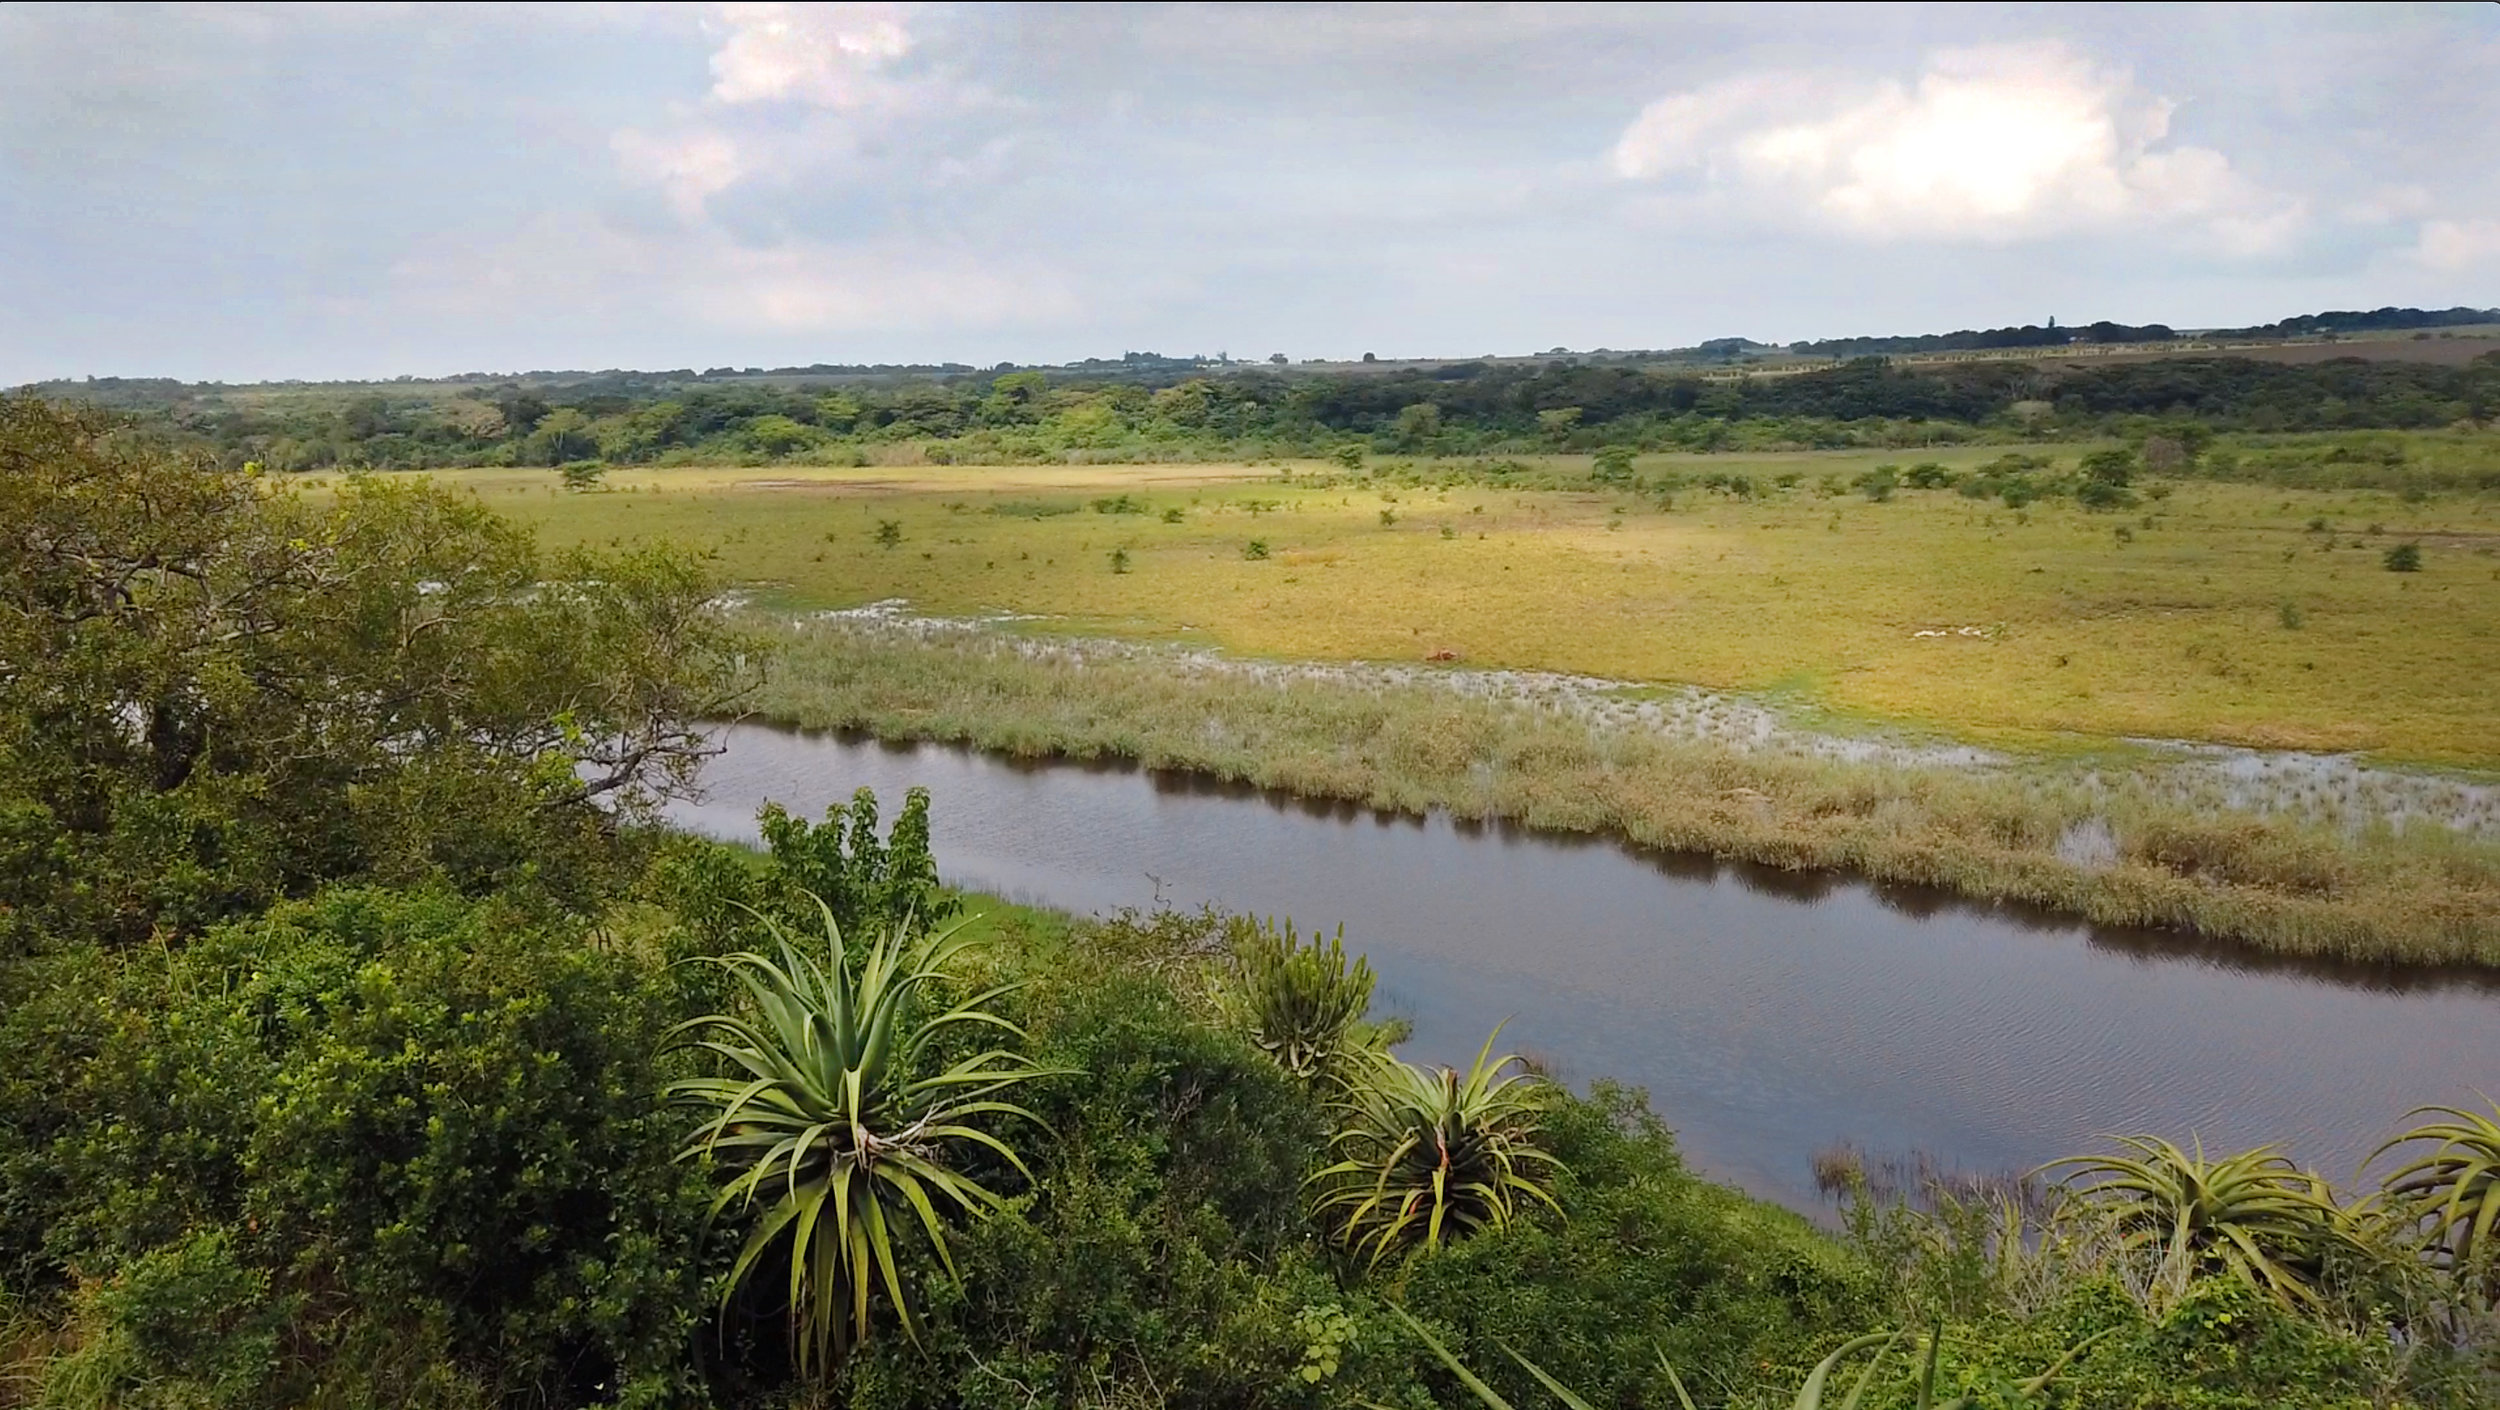 THE MANY VEGETATION TYPES AND ACCESS TO WATER MAKE MFULENI A PERFECT HABITAT FOR WILDLIFE